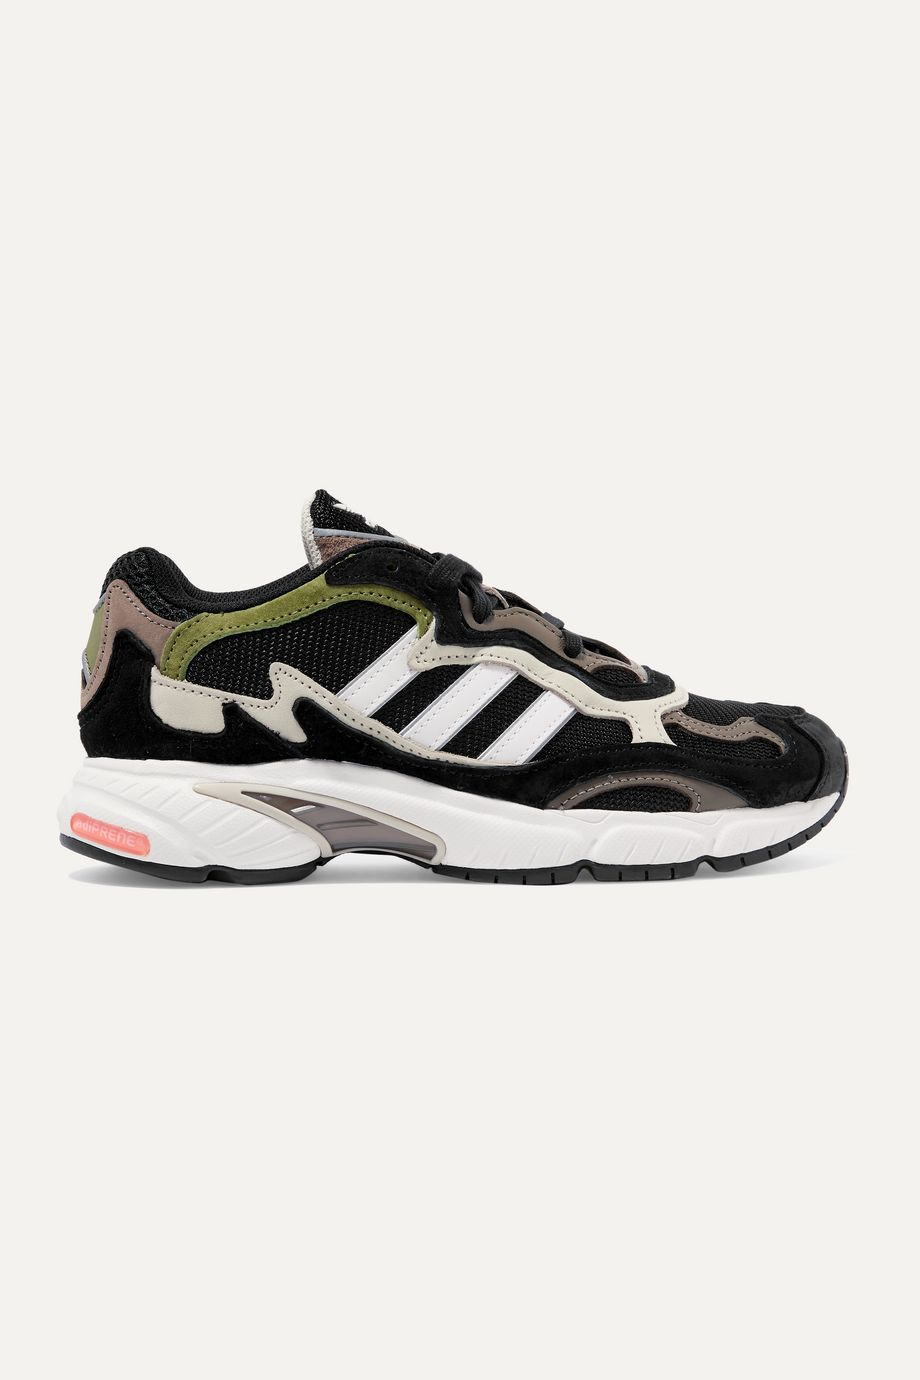 adidas Originals Temper Run mesh, suede and leather sneakers